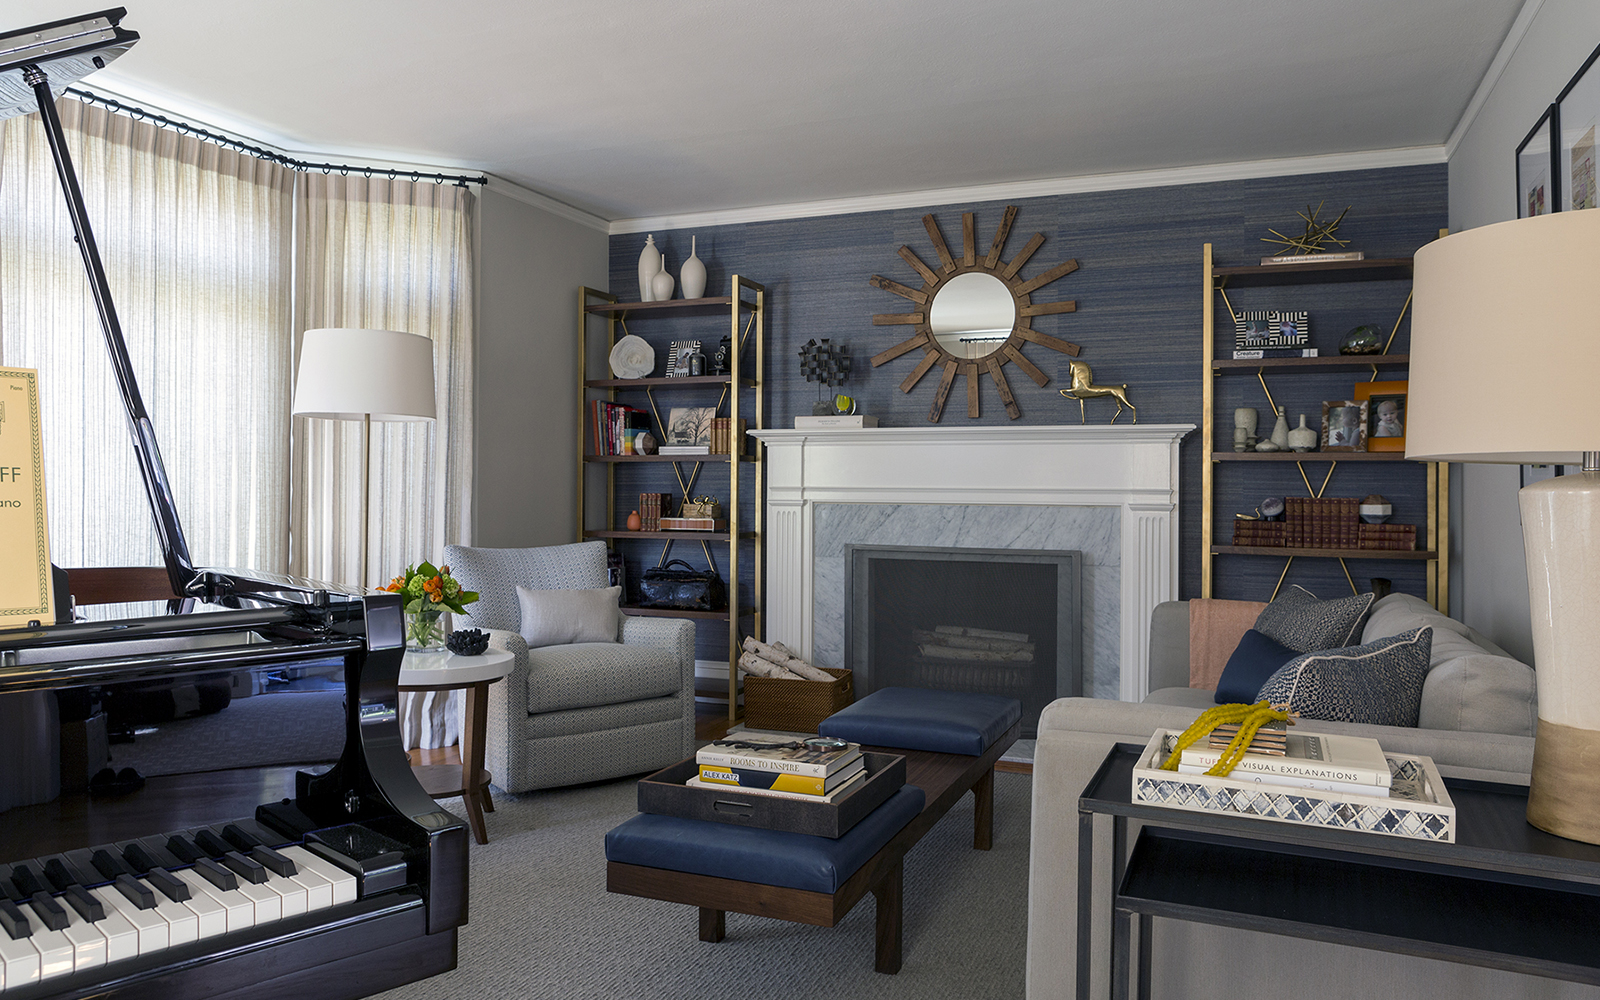 A modern style, fully redesigned, remodeled formal living room in California bungalow house Piedmont Oakland Lamorinda.